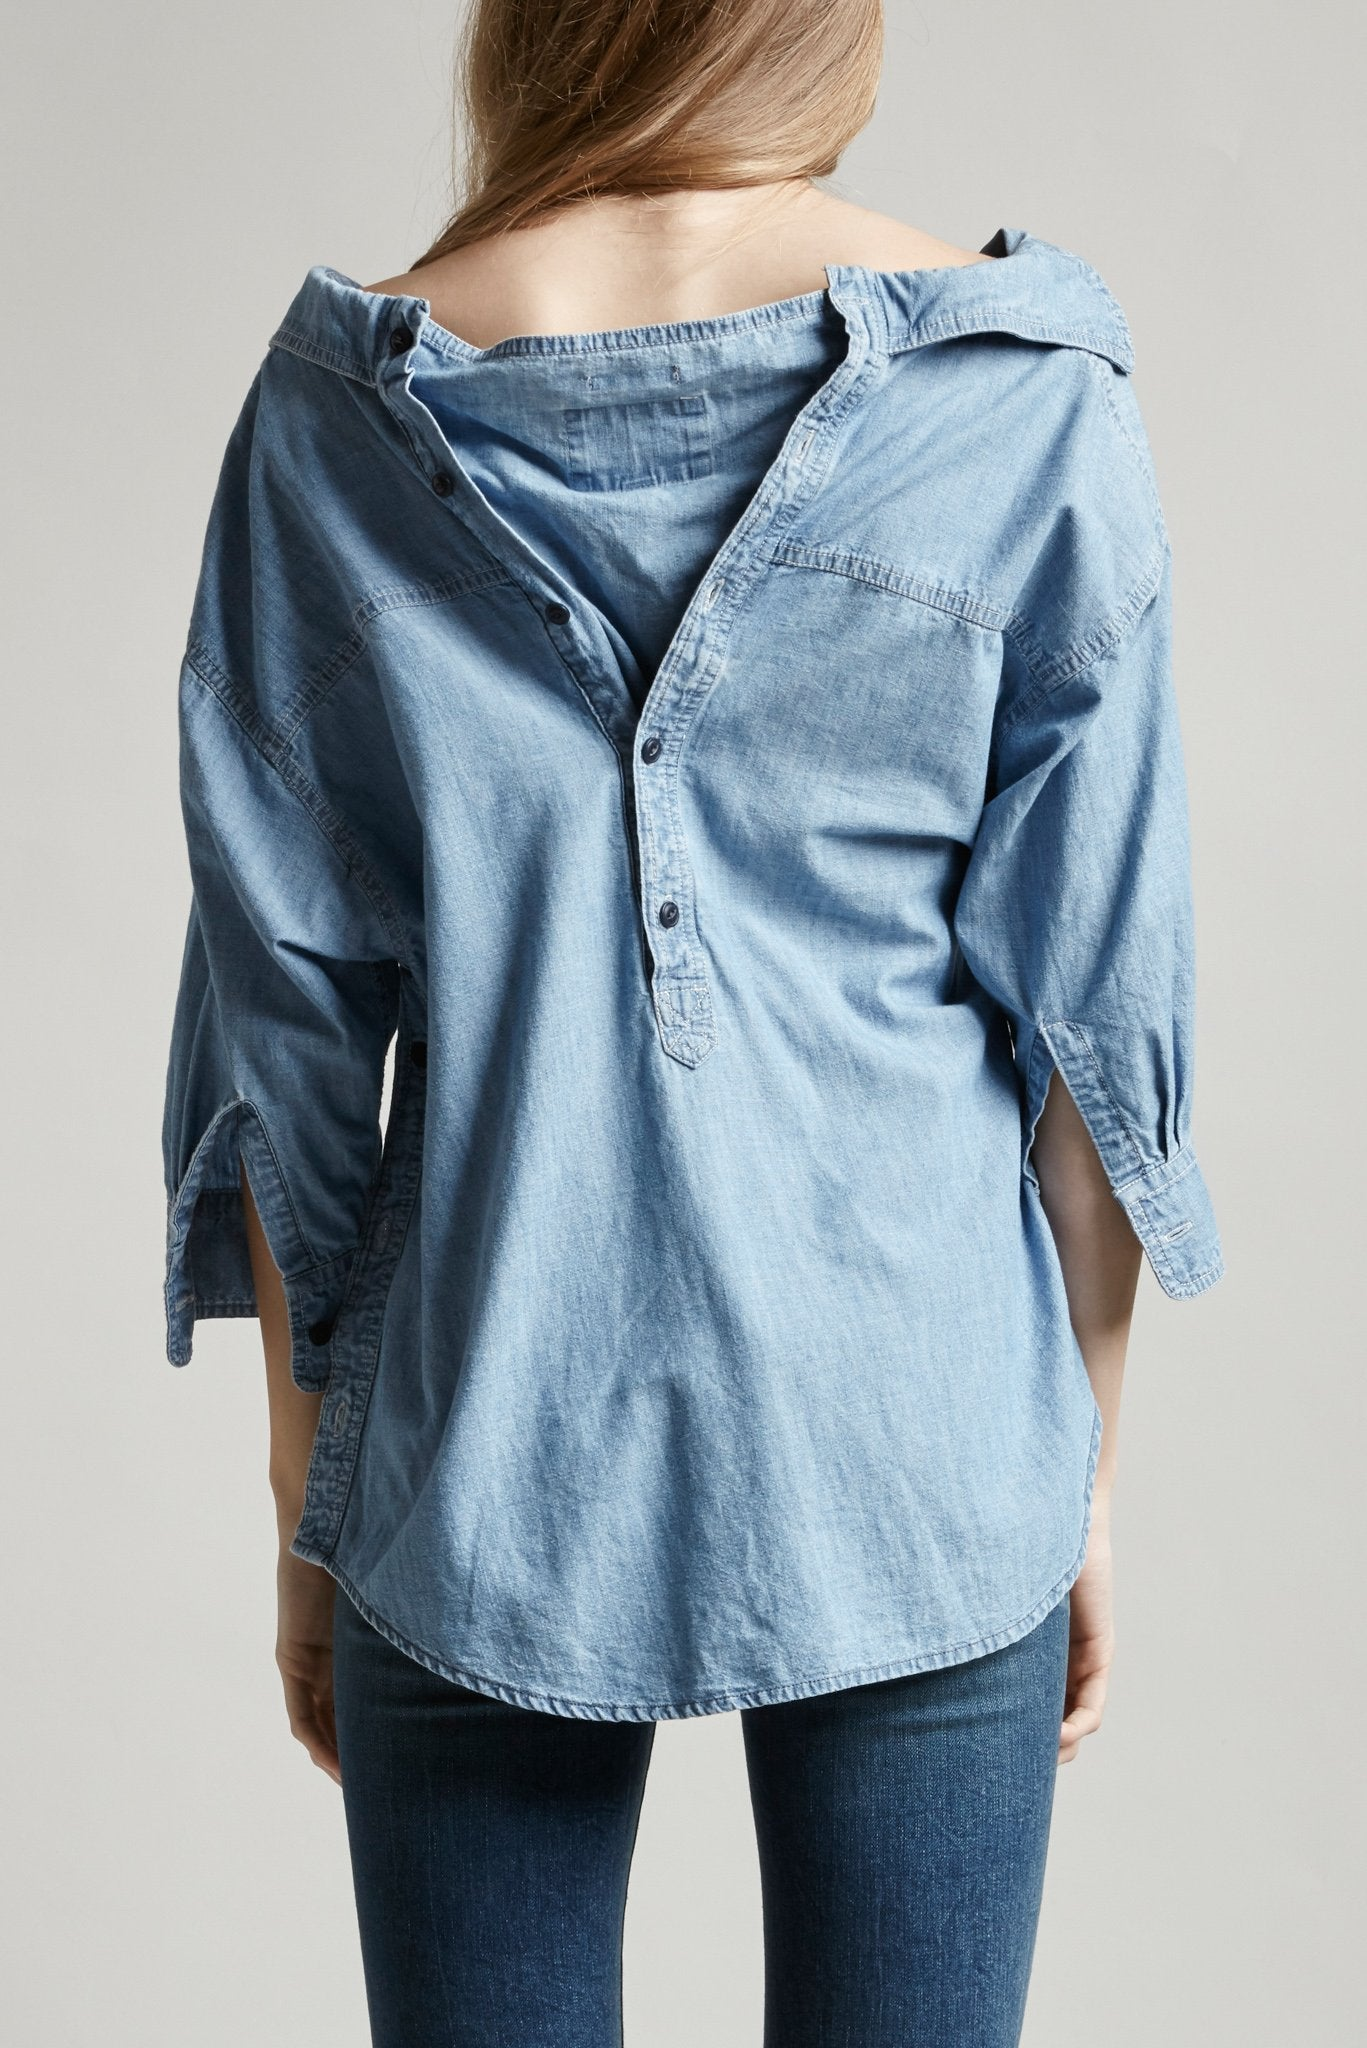 Overlap Chambray Shirt - Faded Indigo